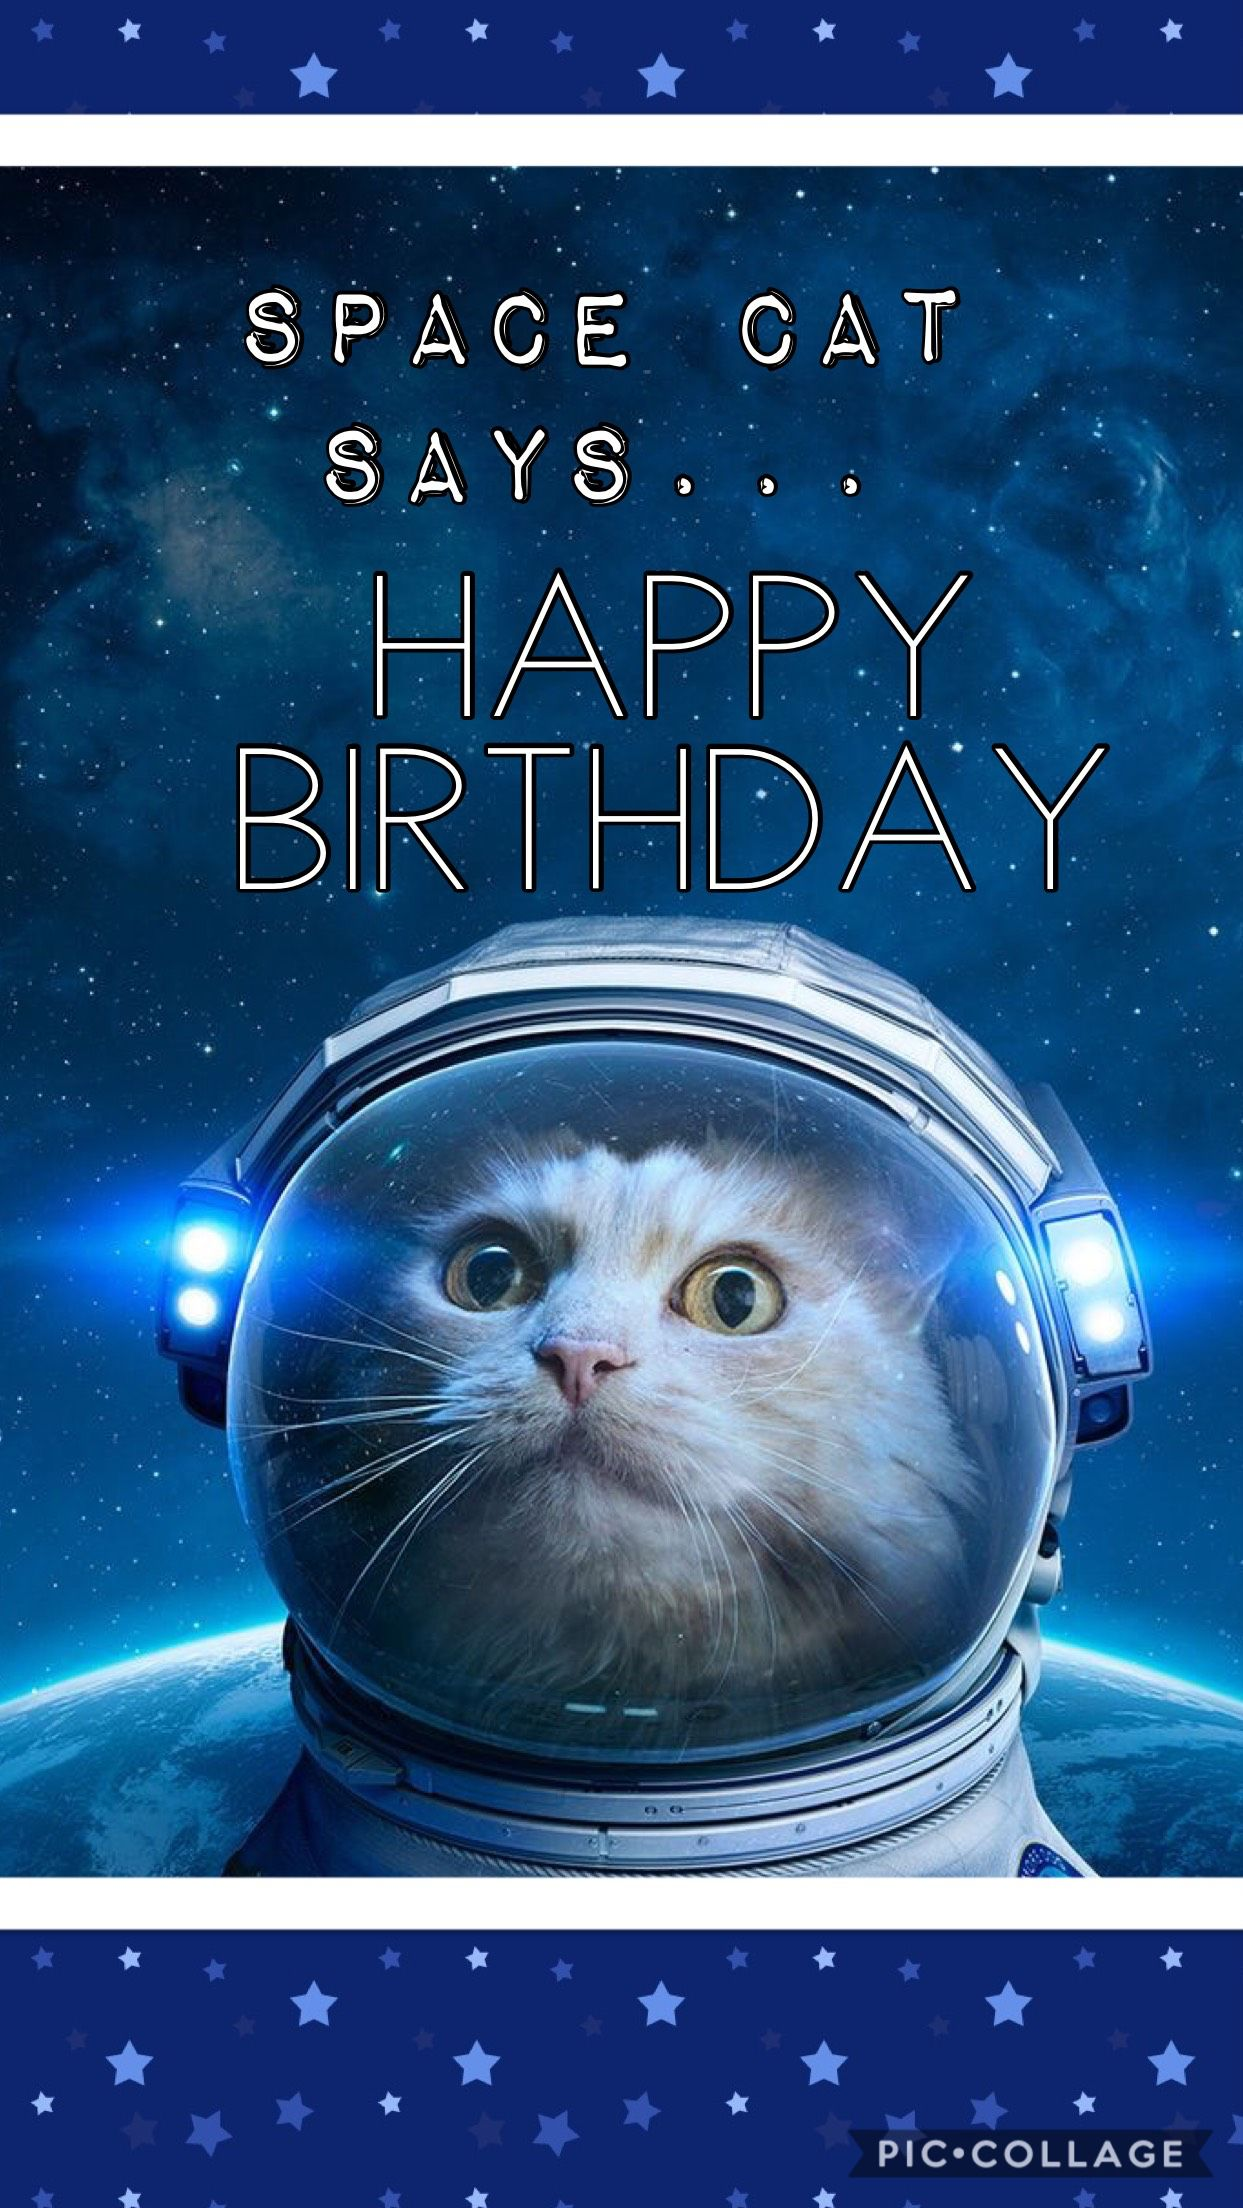 Space cat happy bday